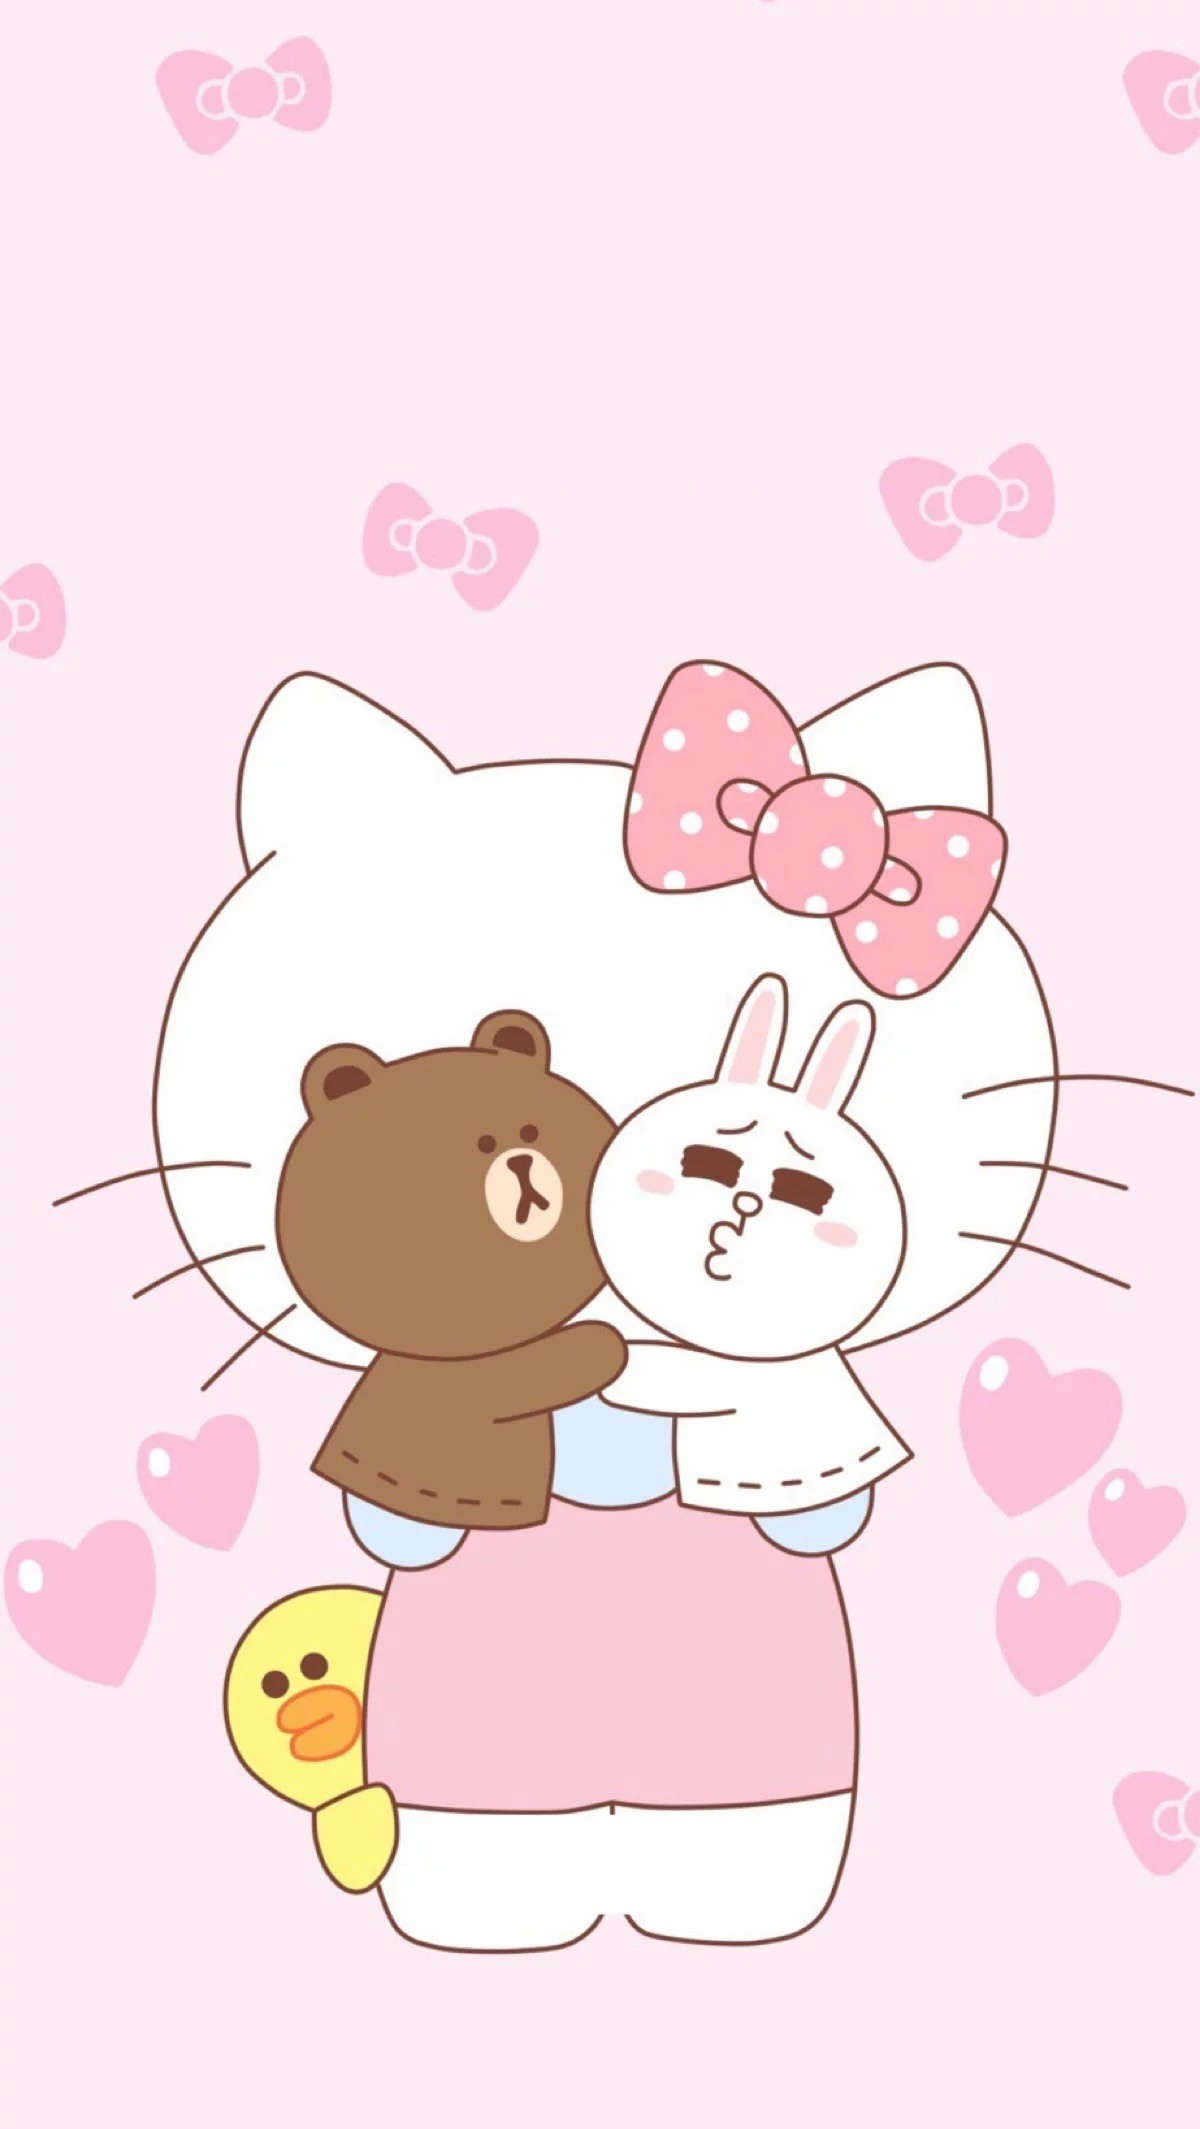 Must see Wallpaper Mobile Hello Kitty - 1043801-hello-kitty-and-friends-wallpaper-1200x2129-1080p  Trends_487084.jpg